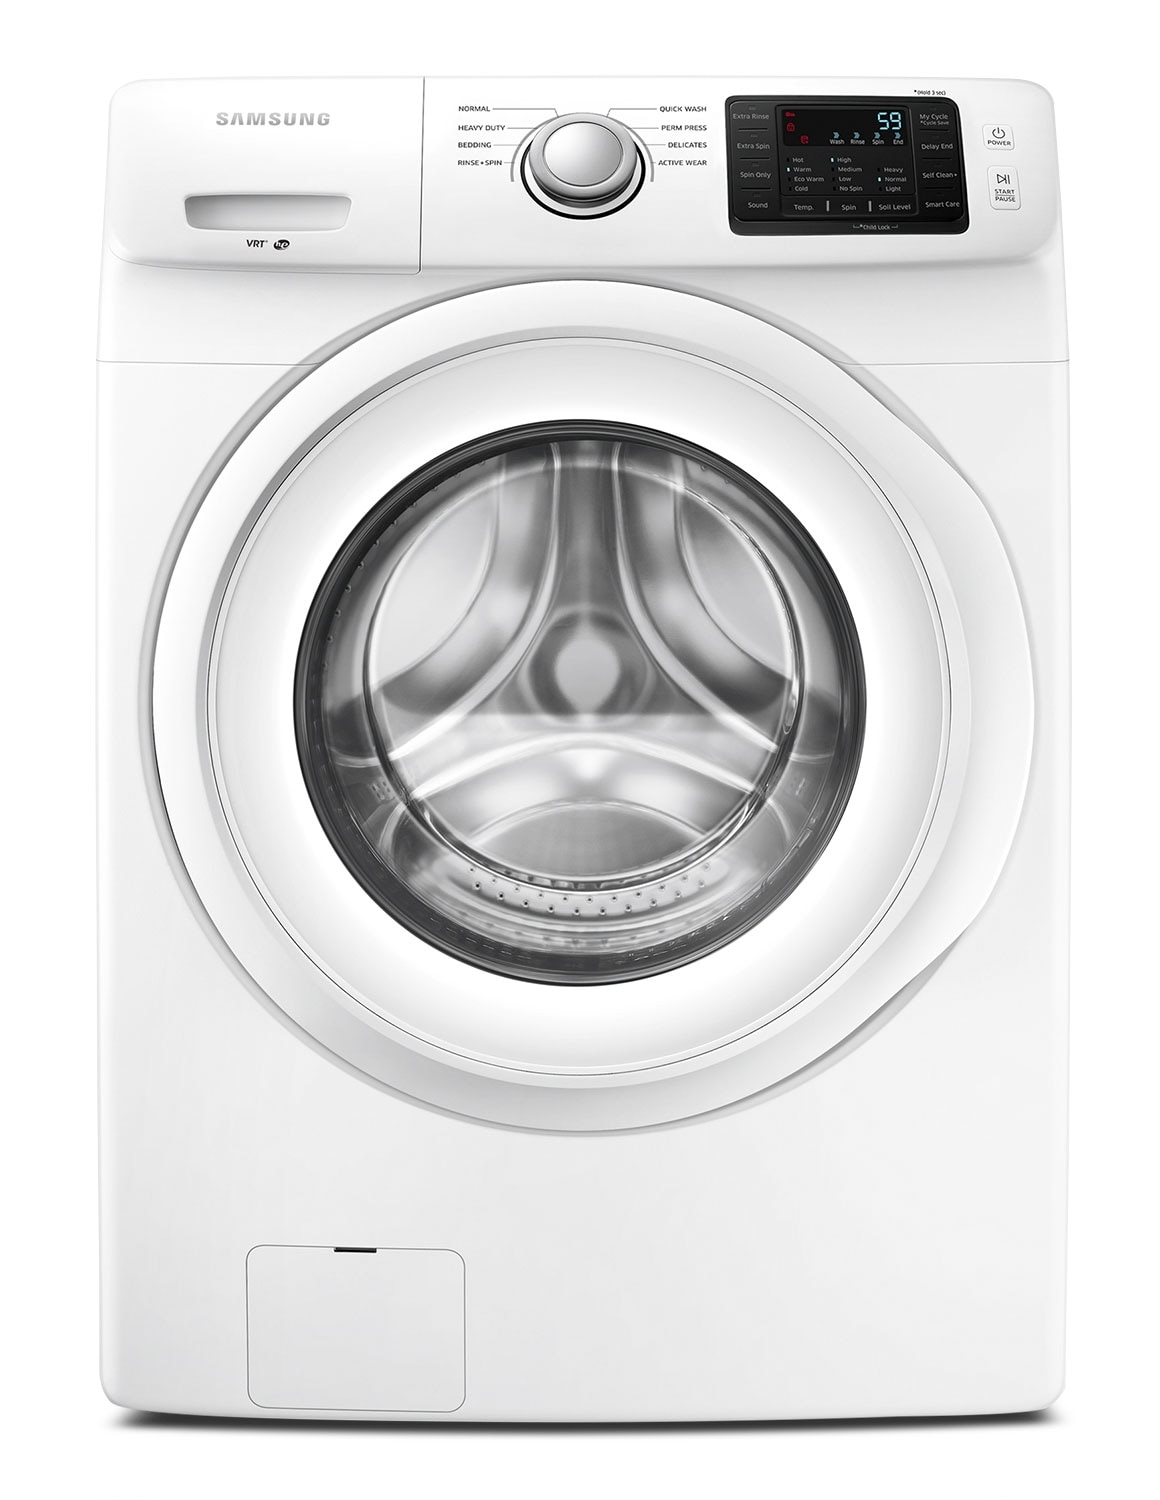 Samsung White Front-Load Washer (4.8 Cu. Ft.) - WF42H5000AW